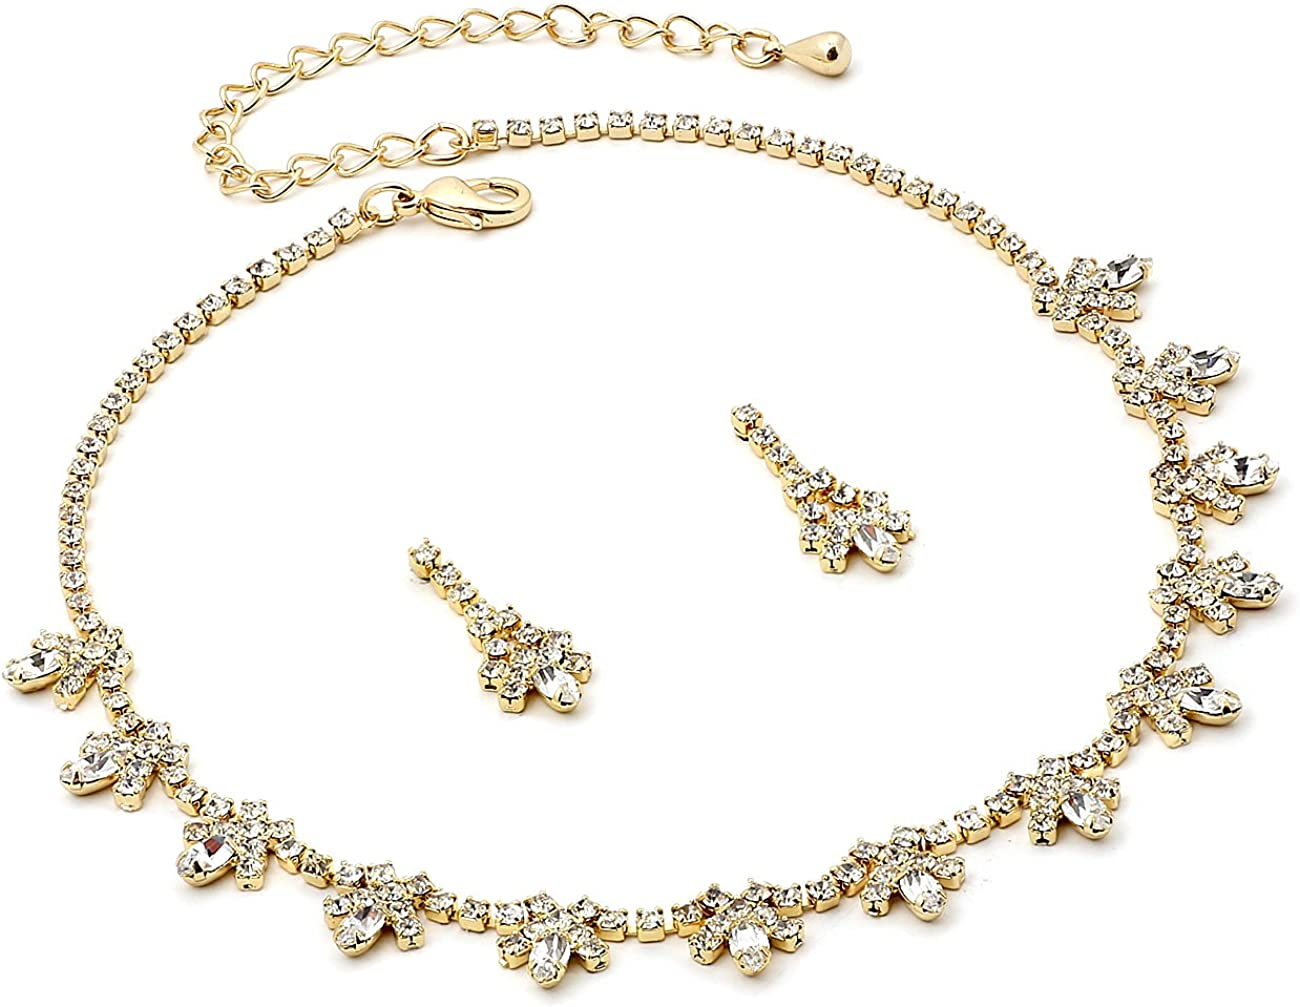 Topwholesalejewel Gold Crystal Rhinestone Necklace with Ribbon Accents & Matching Dangle Earrings Jewelry Set